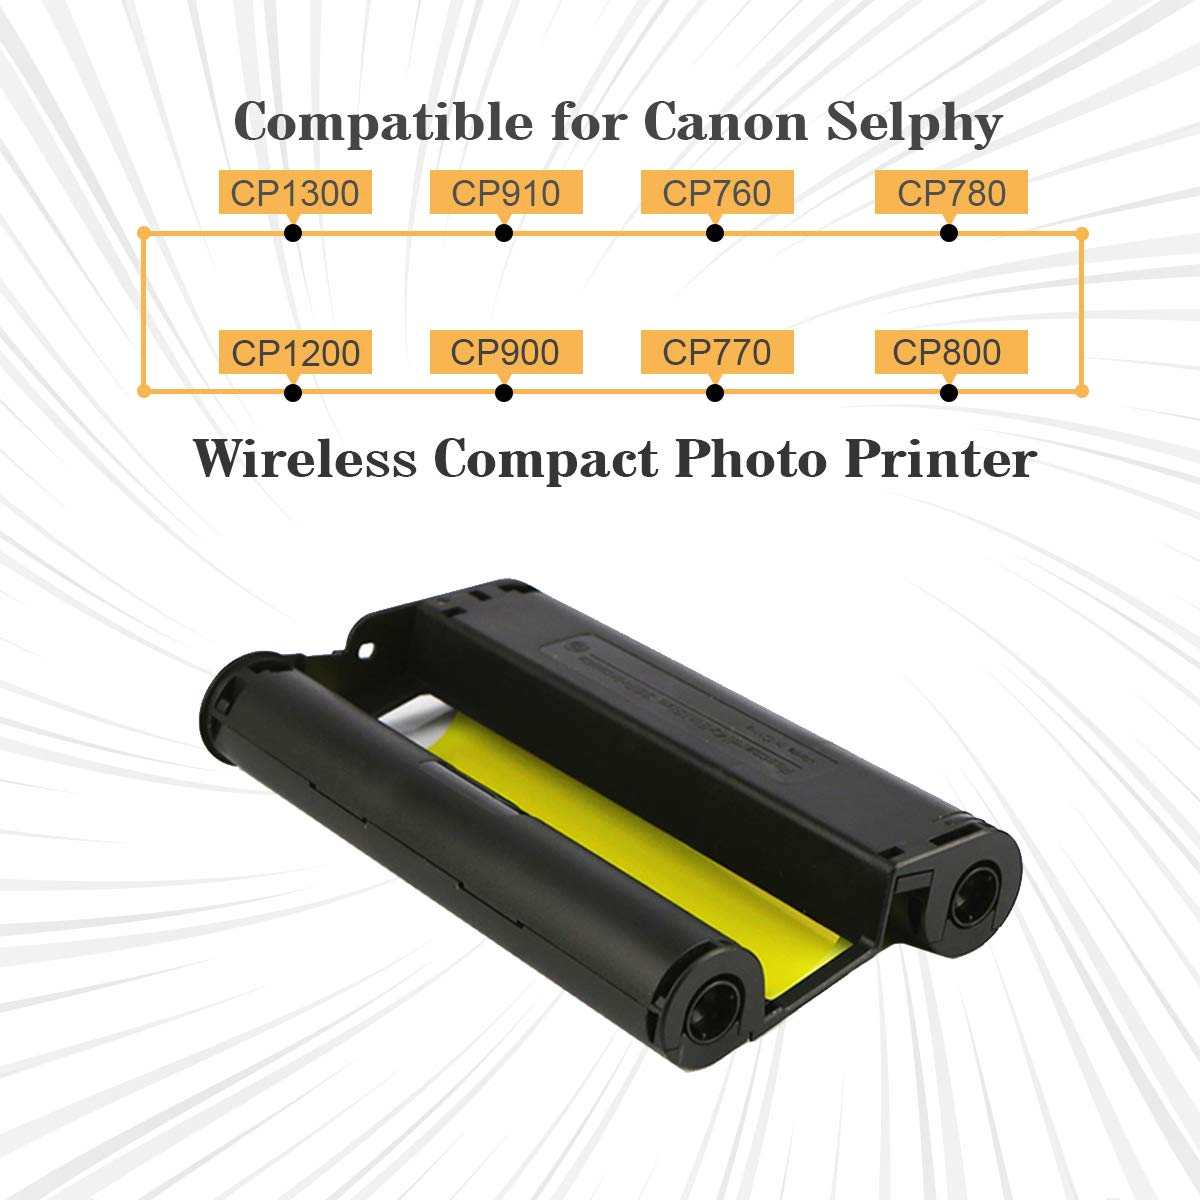 Unismar KP-108IN KP108 Color Ink Cartridges Ribbon Cassette Compatible for Canon Selphy CP1200 CP1300 CP910 CP900 Wireless Compact Photo Printer 36 Prints for P Tray 2 Pack Without Paper